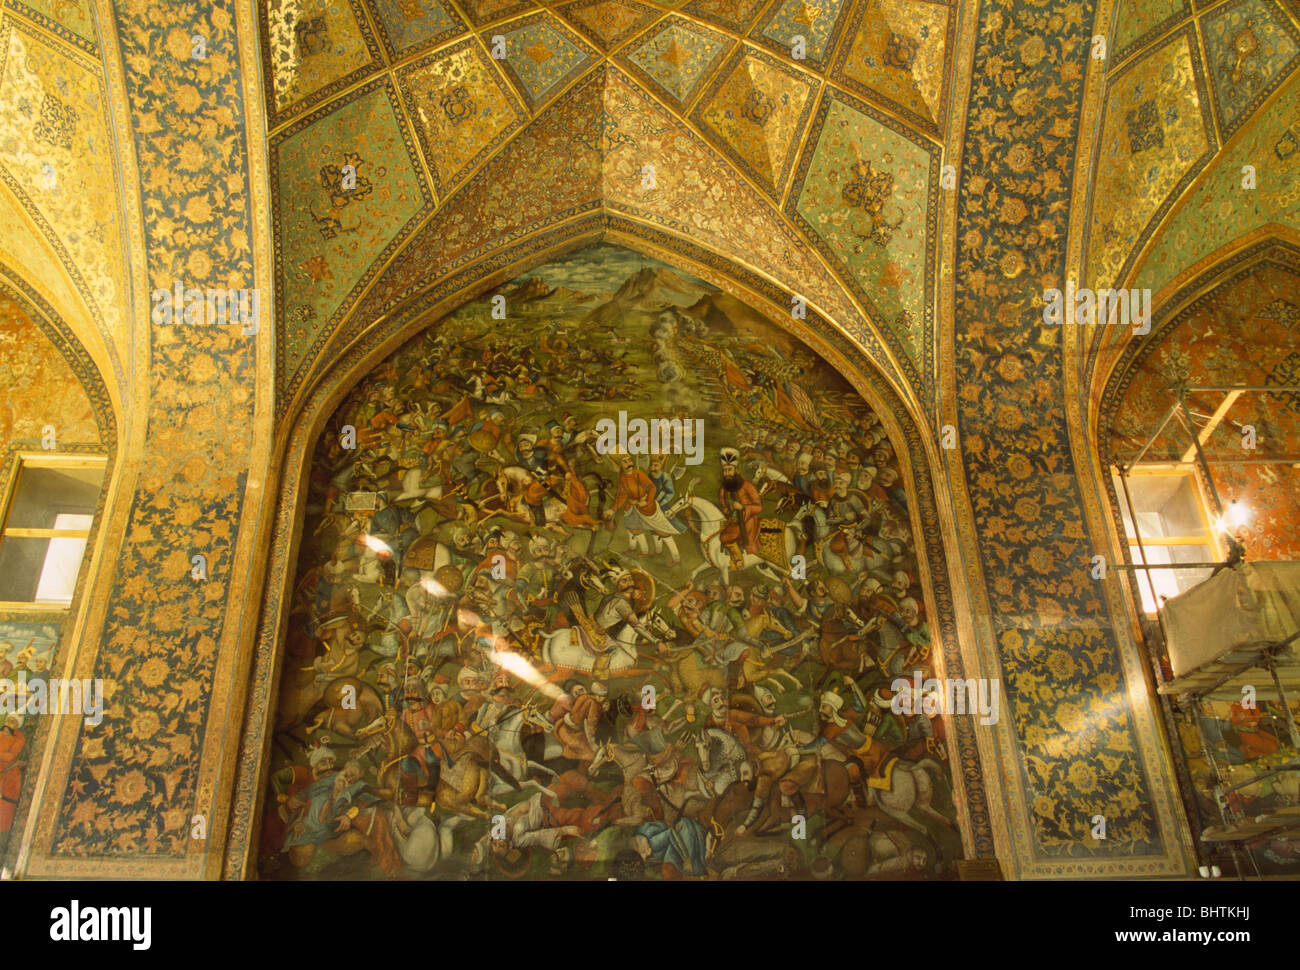 Mural and decorative tiles inside Chehel Sotun Museum, Esfahan, Iran ...